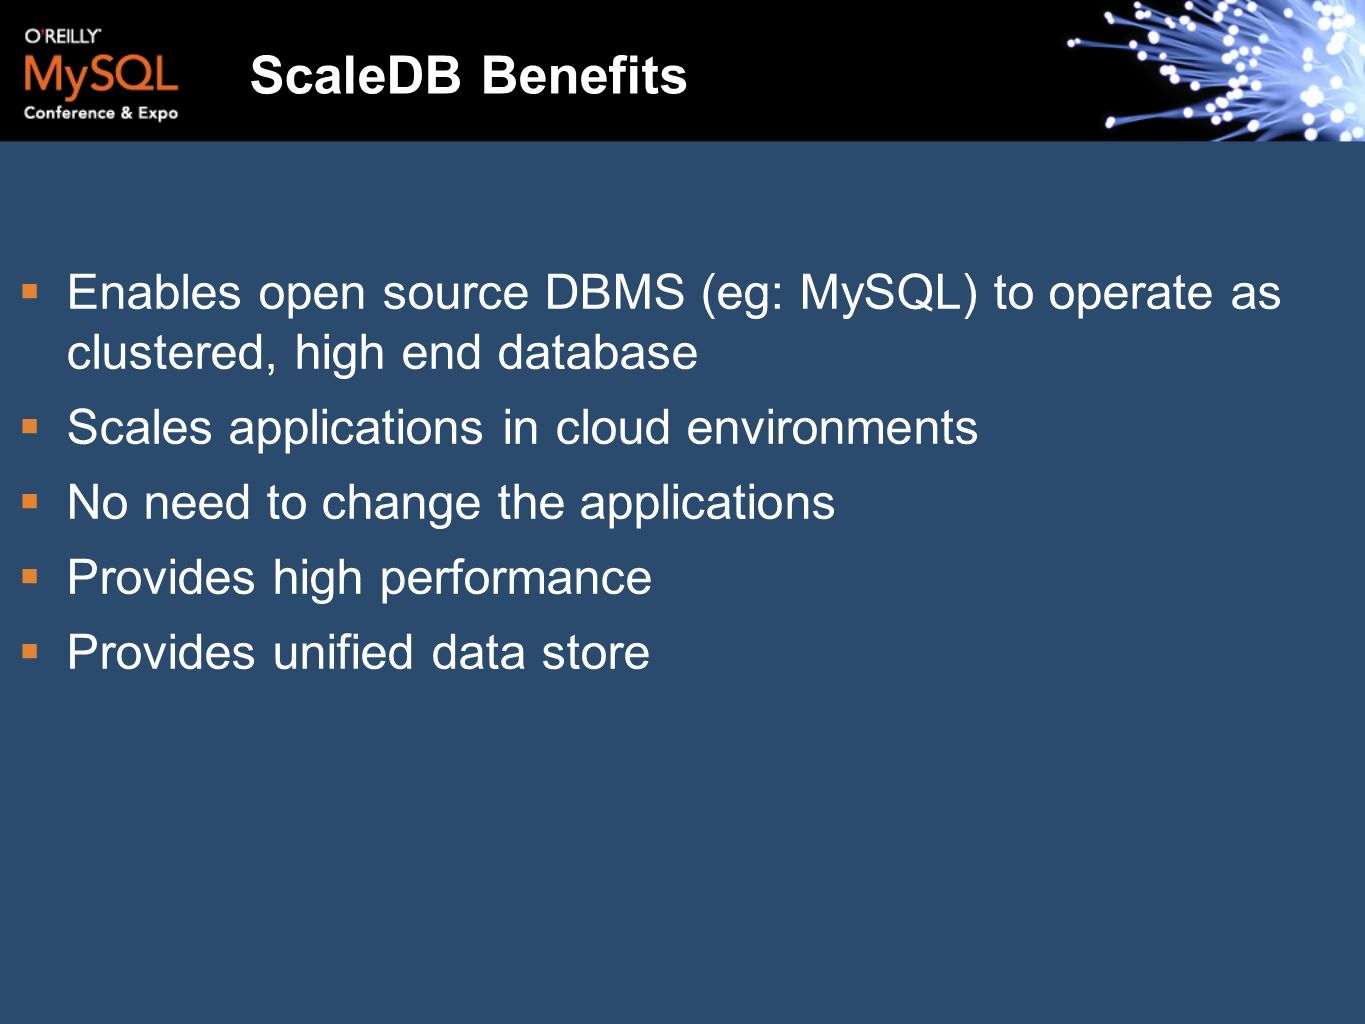 ScaleDB Benefits Enables open source DBMS (eg: MySQL) to operate as clustered, high end database. Scales applications in cloud environments.